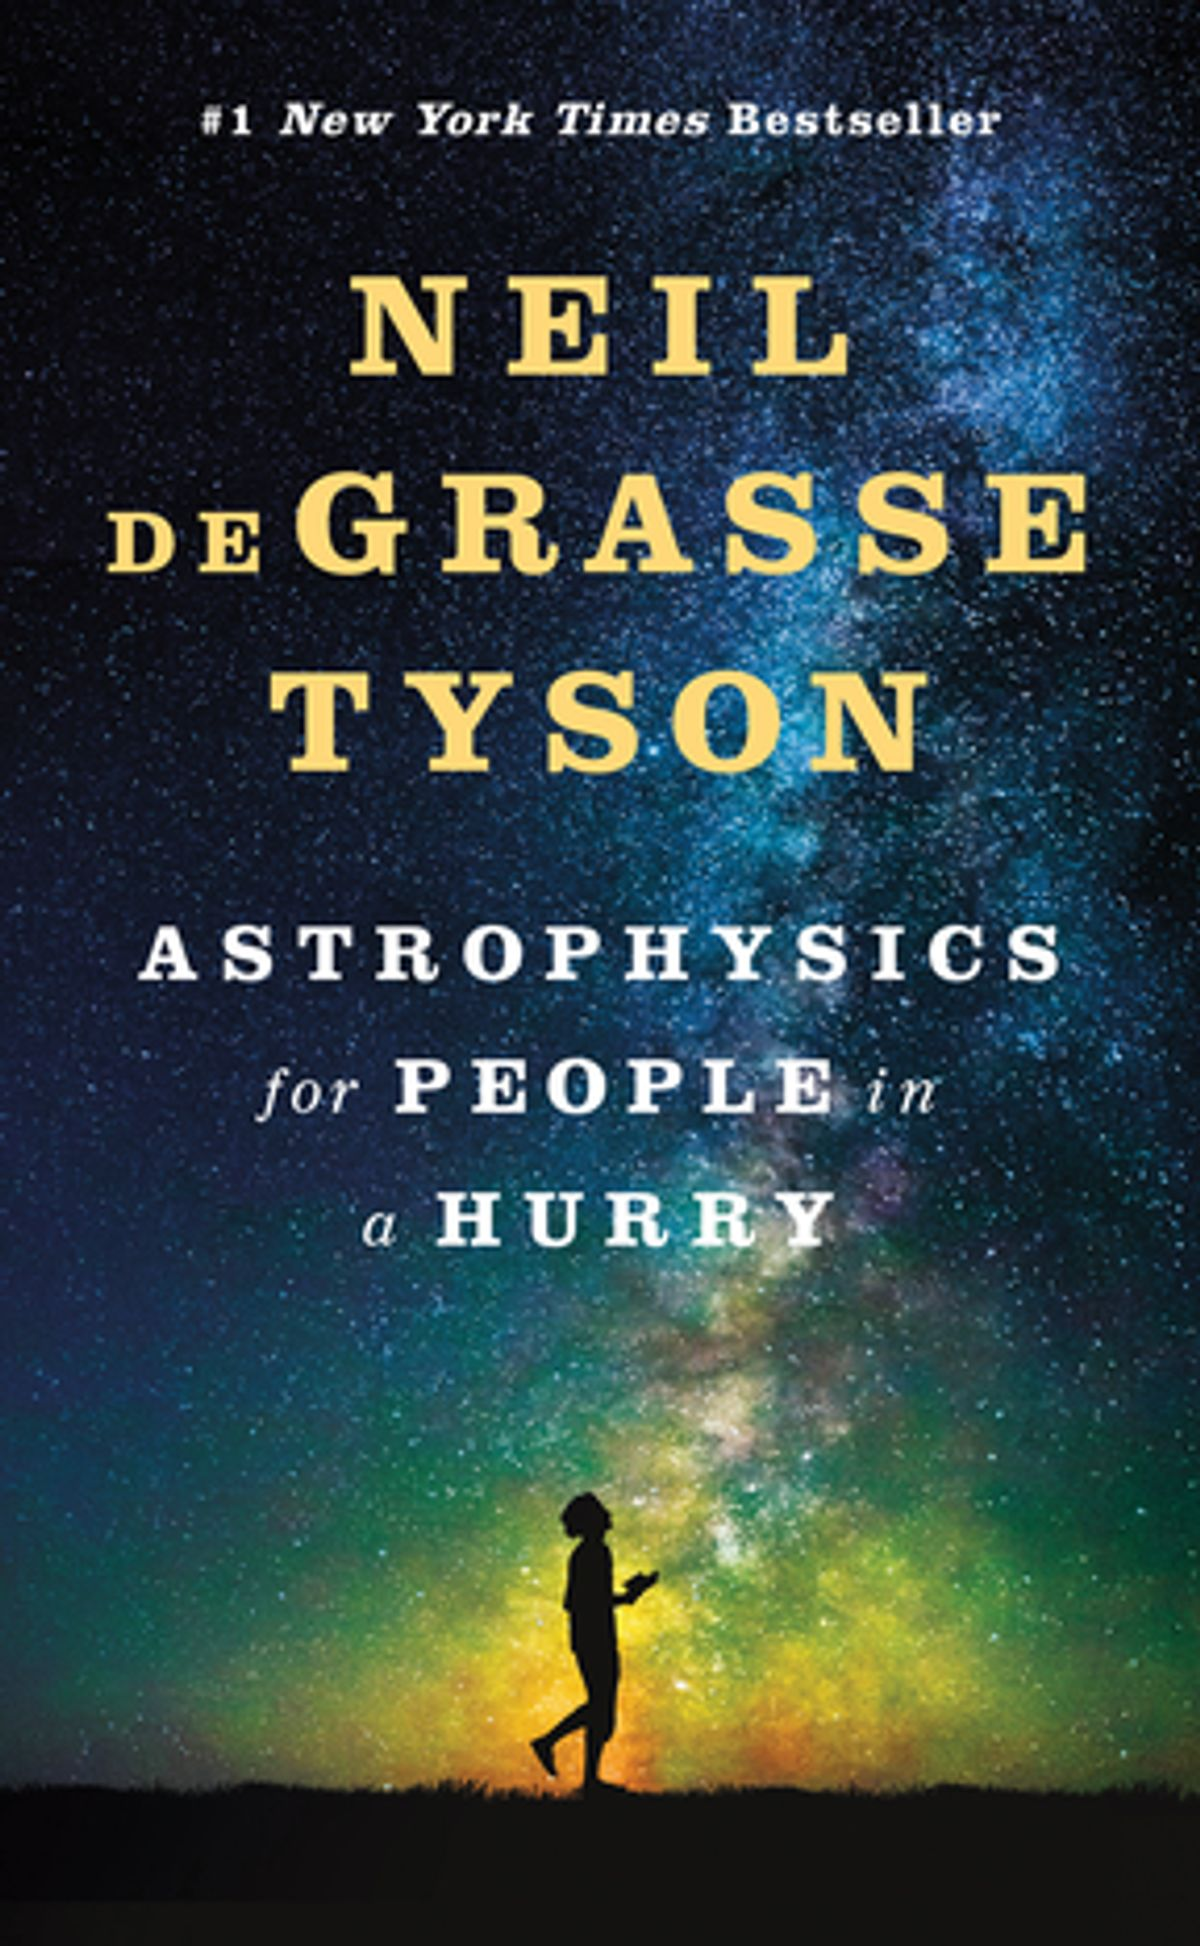 Astrophysics for People in a Hurry